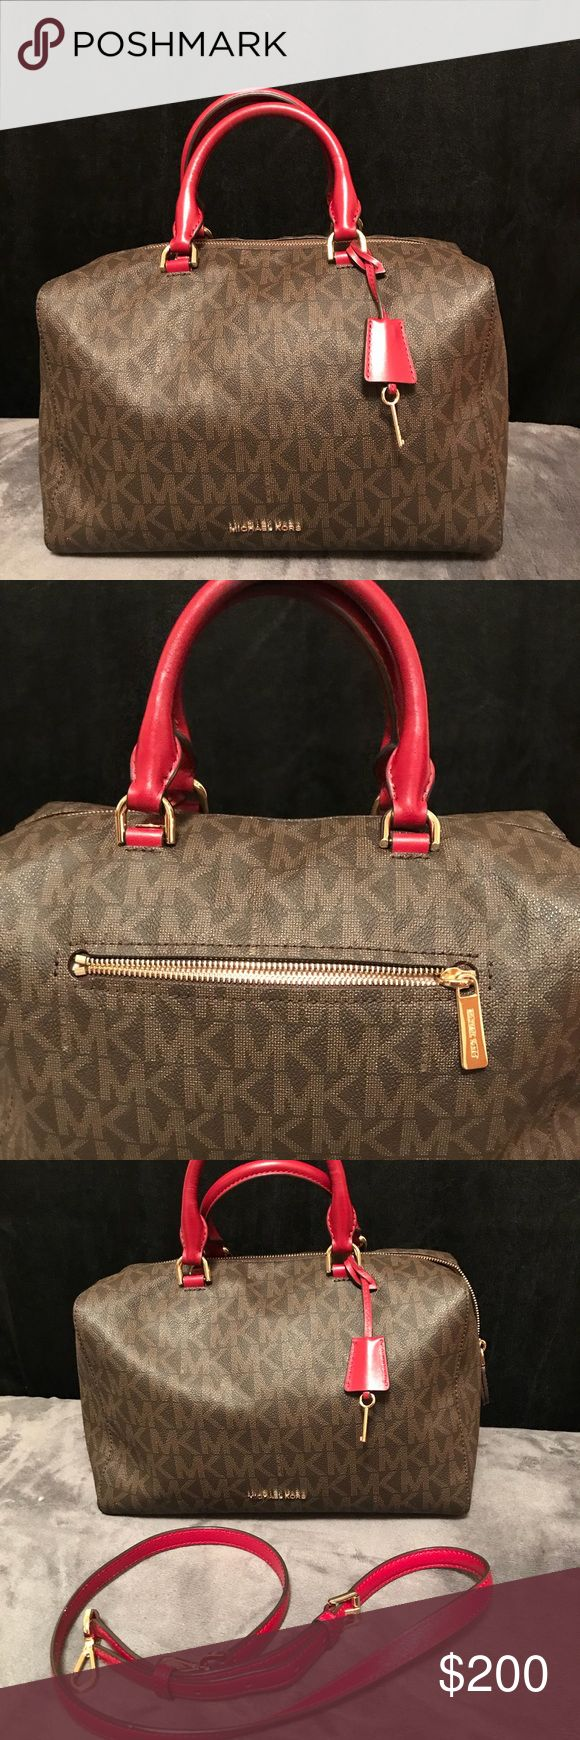 Authentic Michael Kors Kirby Satchel Color is a Wine & Brown, top zip closure with padlock detail located at the base, goldstone hardware. Two rolled handles, signature key located at the base of handles. Detachable & adjustable leather shoulder strap, bottom feet. Comes with dust bag. Michael Kors Bags Satchels